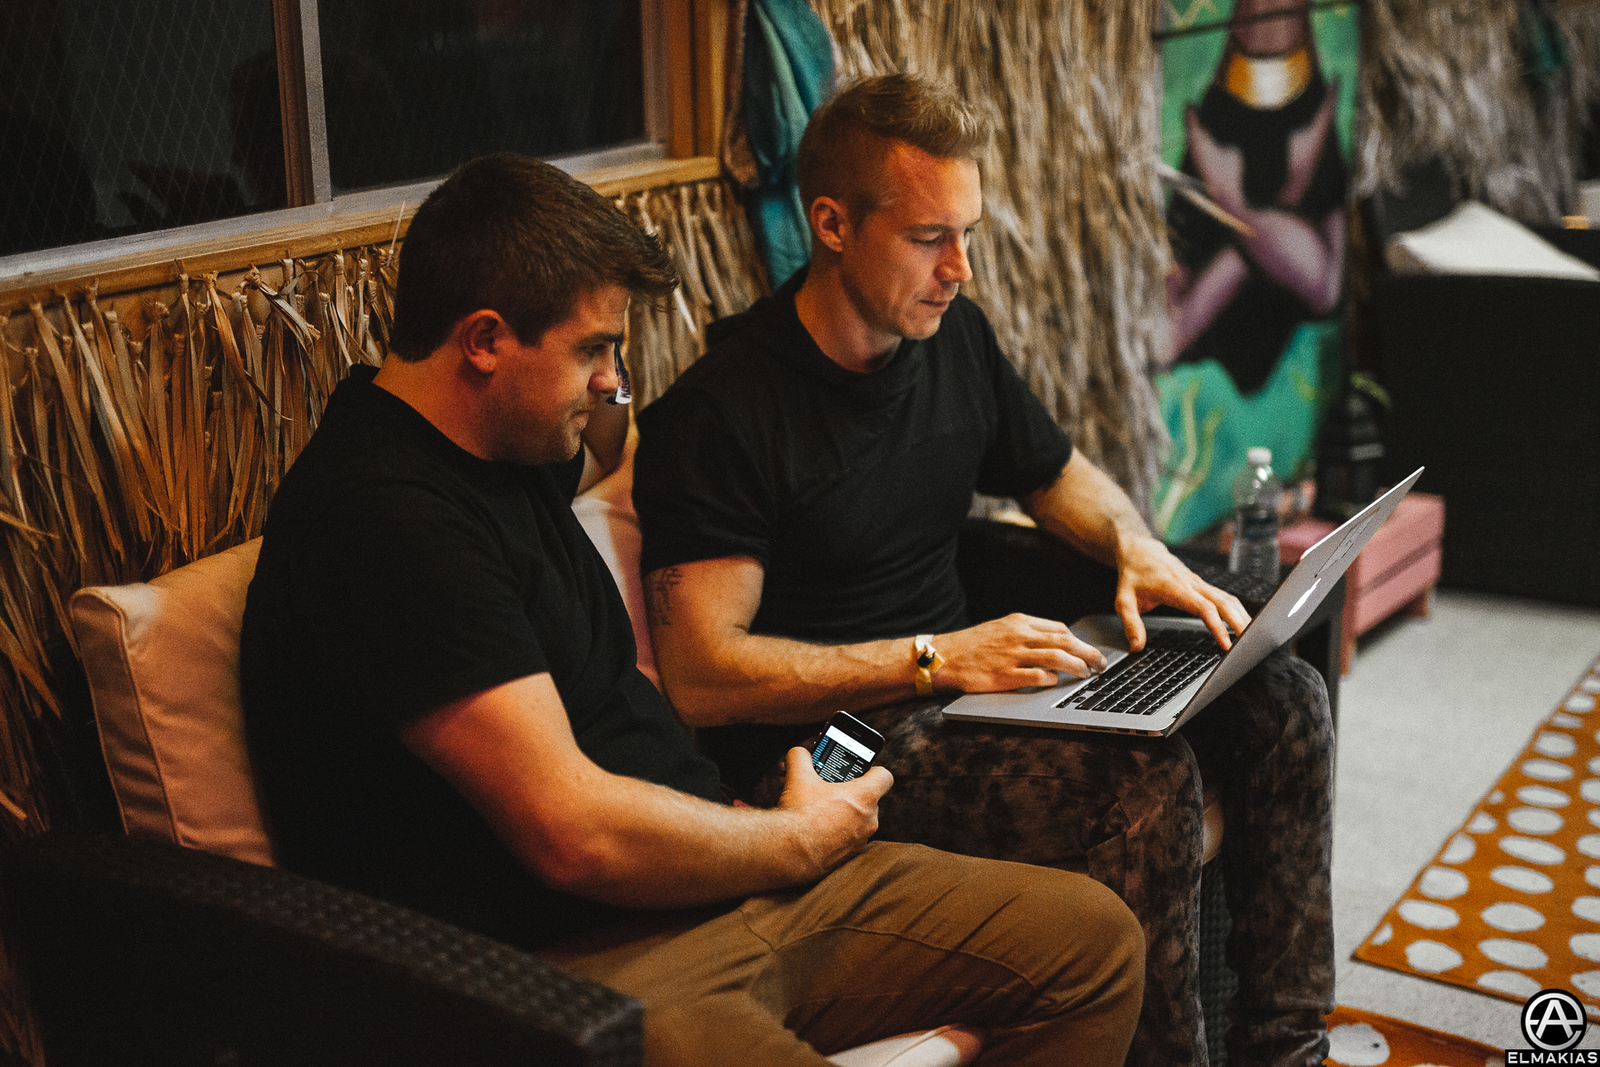 Diplo and his light guy discussion the set he is about to play